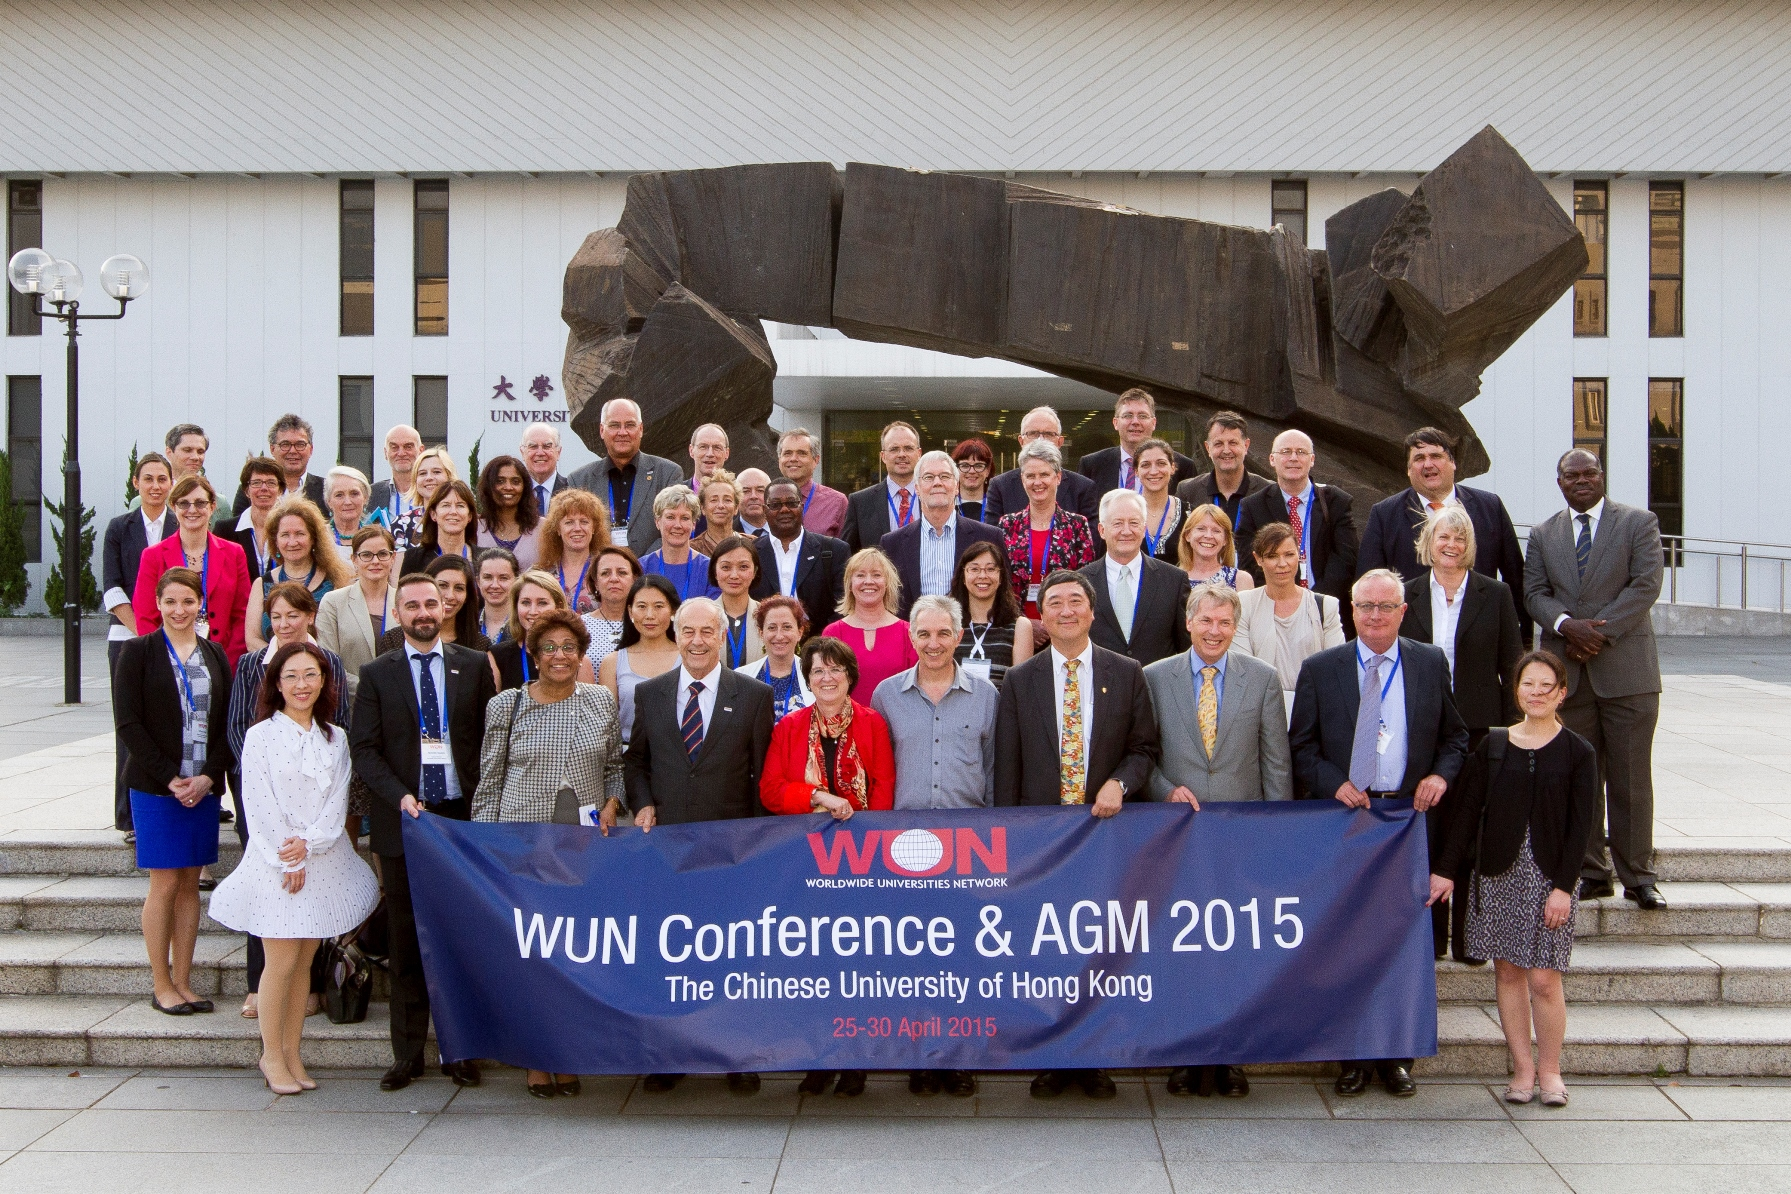 A group photo of the WUN Conference & AGM delegates